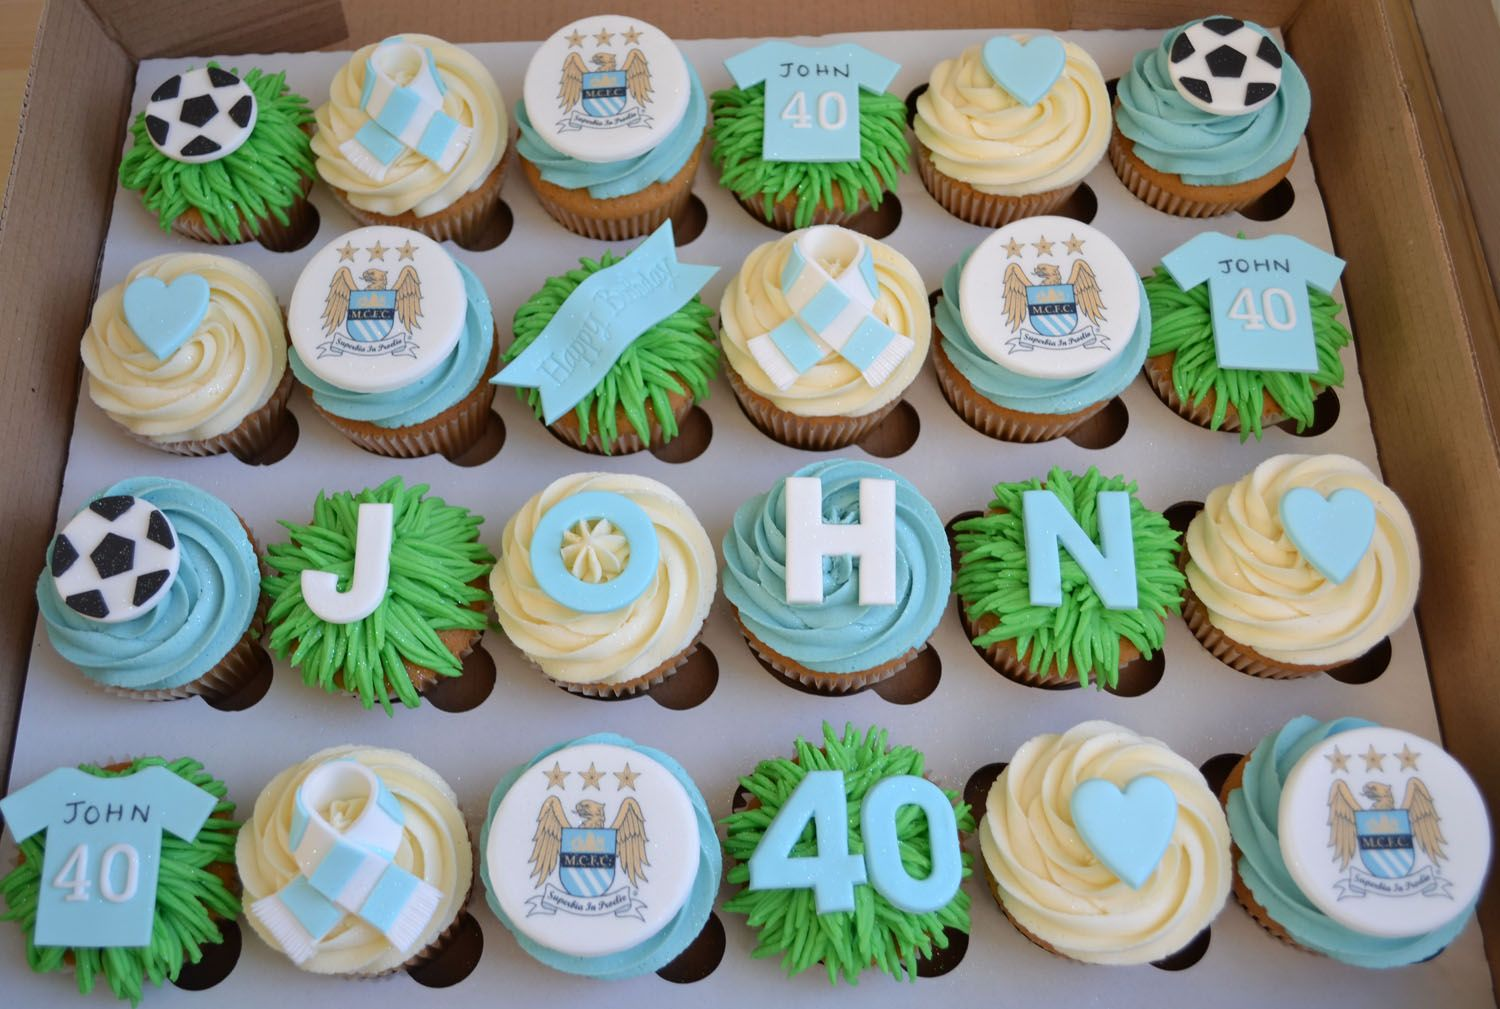 Little Paper Cakes Johns MCFC 40th Birthday Cupcakes Party a